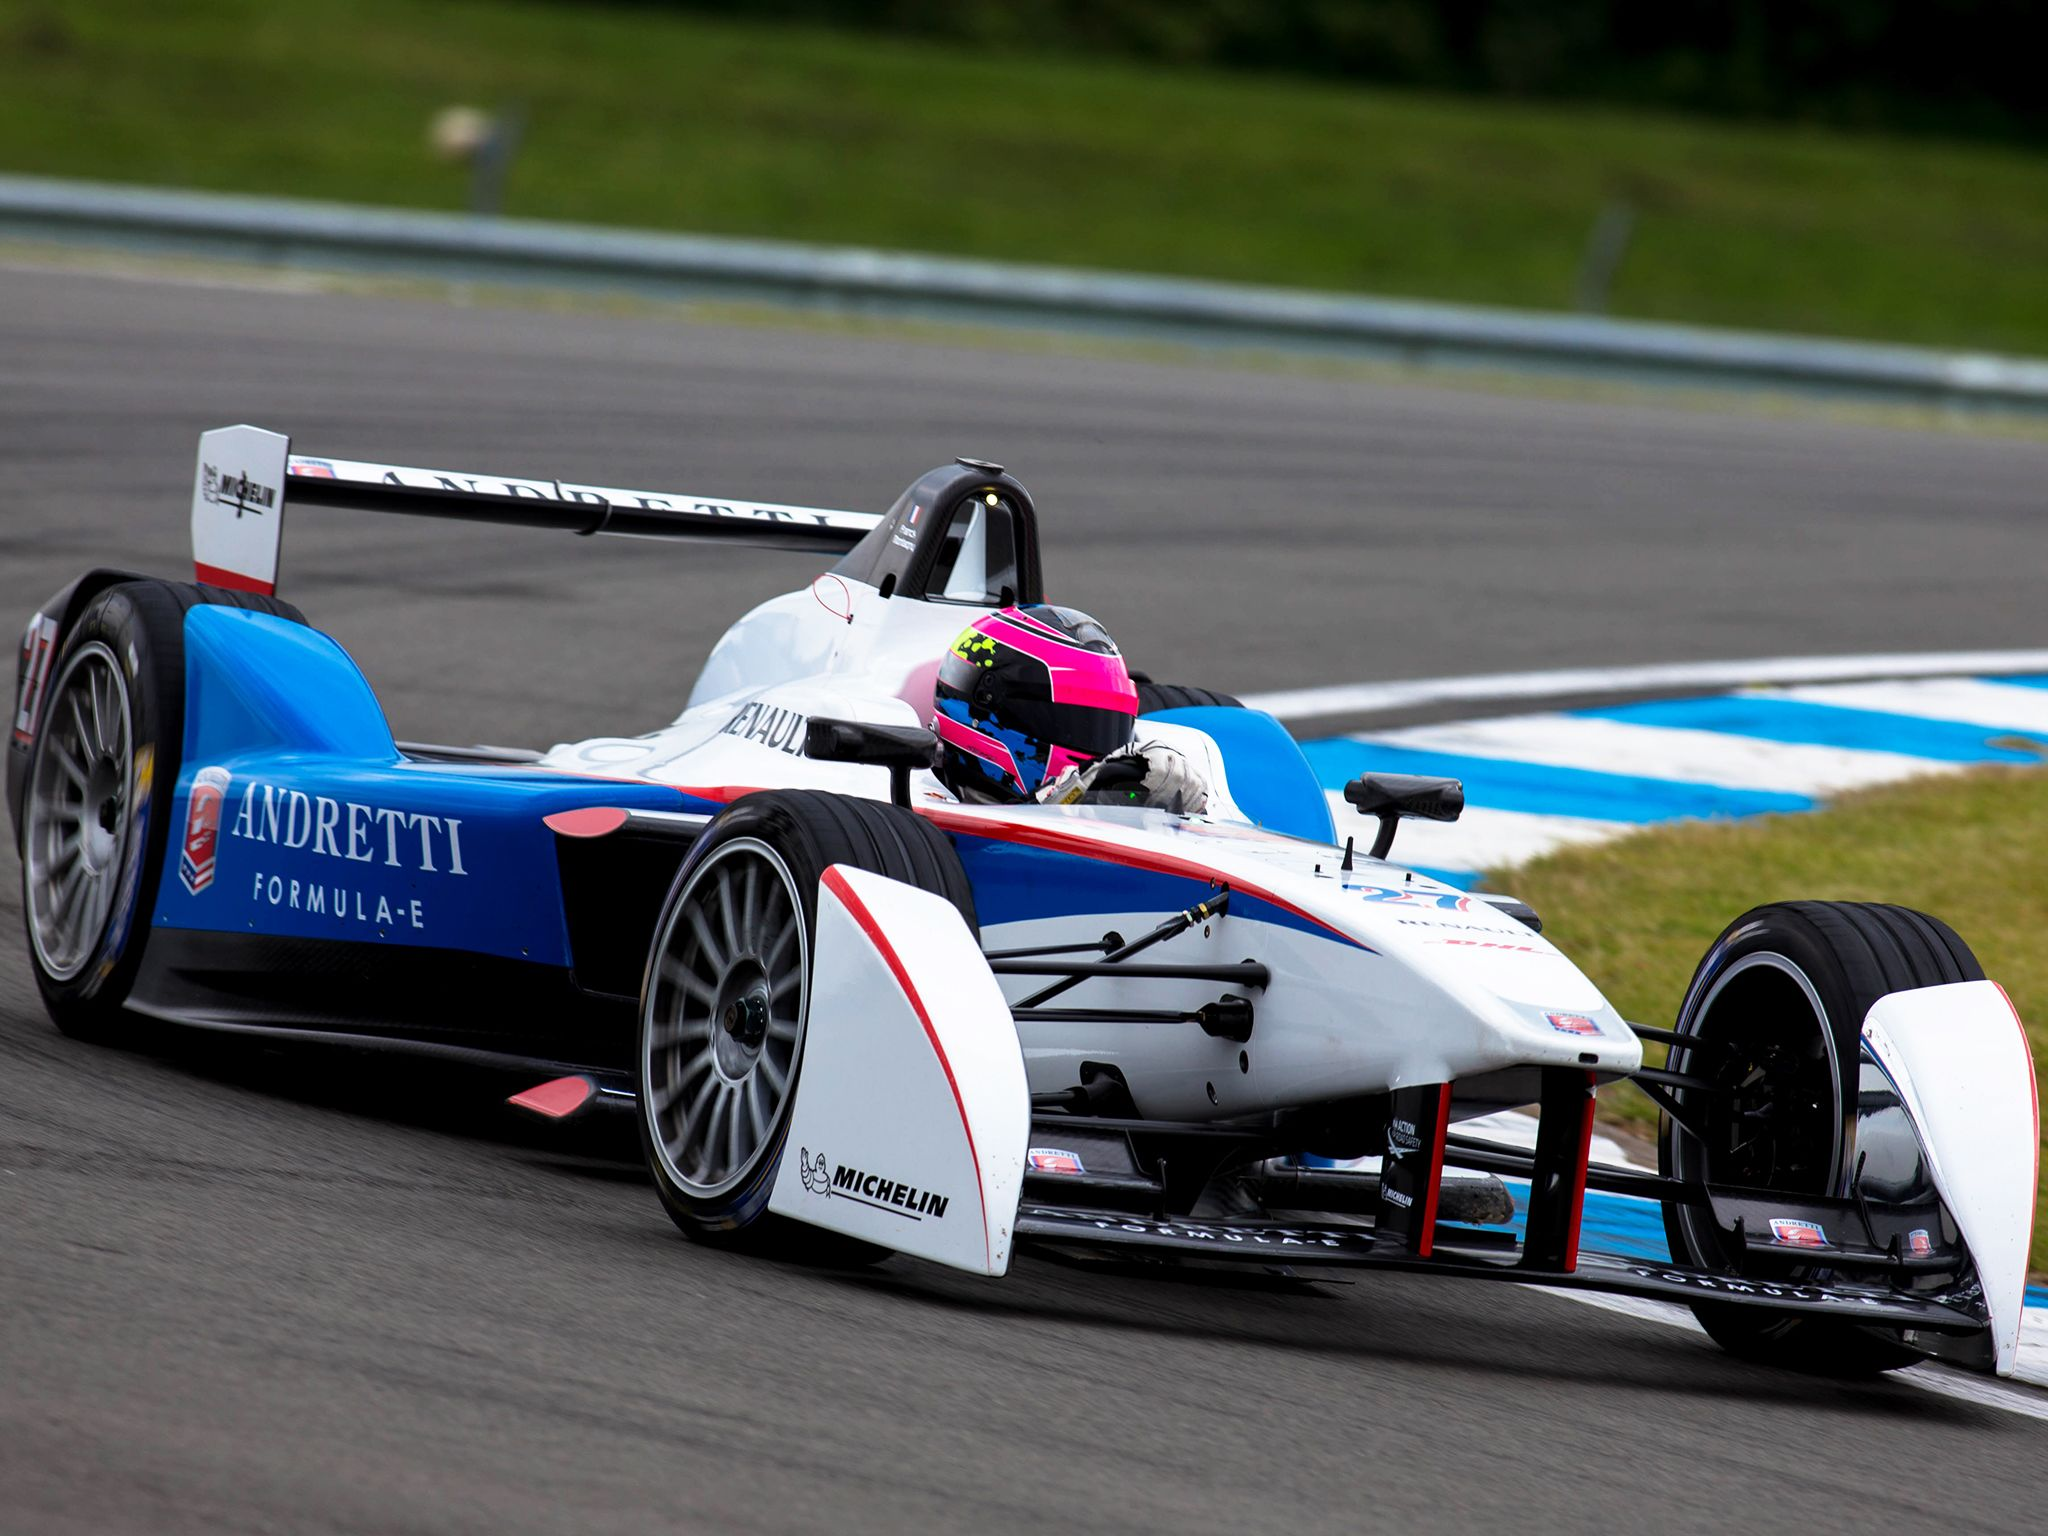 "Donington, UK. Vozilo ""Andretti"" na stazi. Ovo je prizor iz emisije ""Formula E"". [Photo of the day - rujan 2014]"